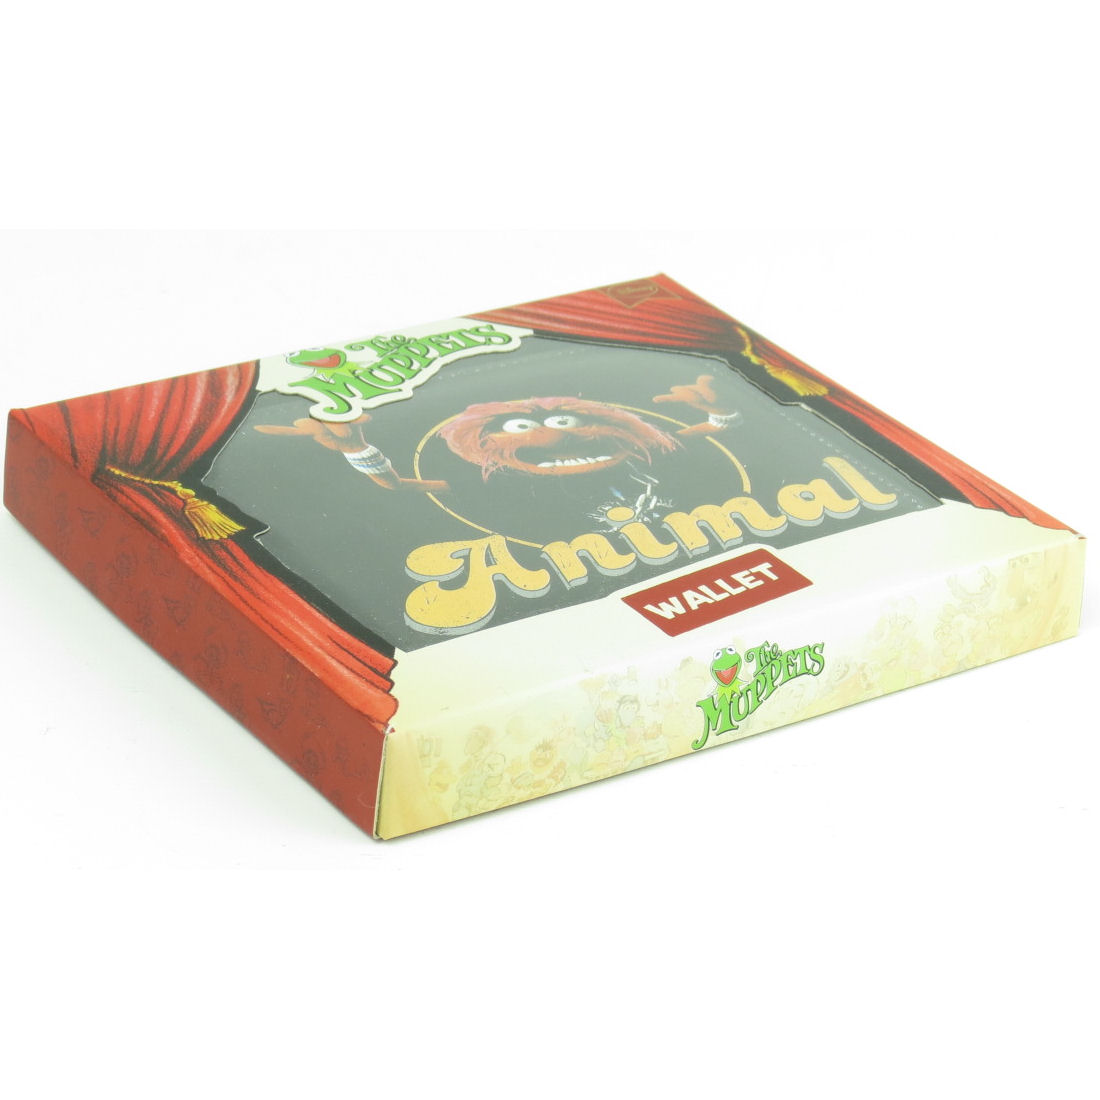 MUPPETS ANIMAL BOXED WALLET RETRO CARD HOLDER COIN SECTION FAUX LEATHER GIFT